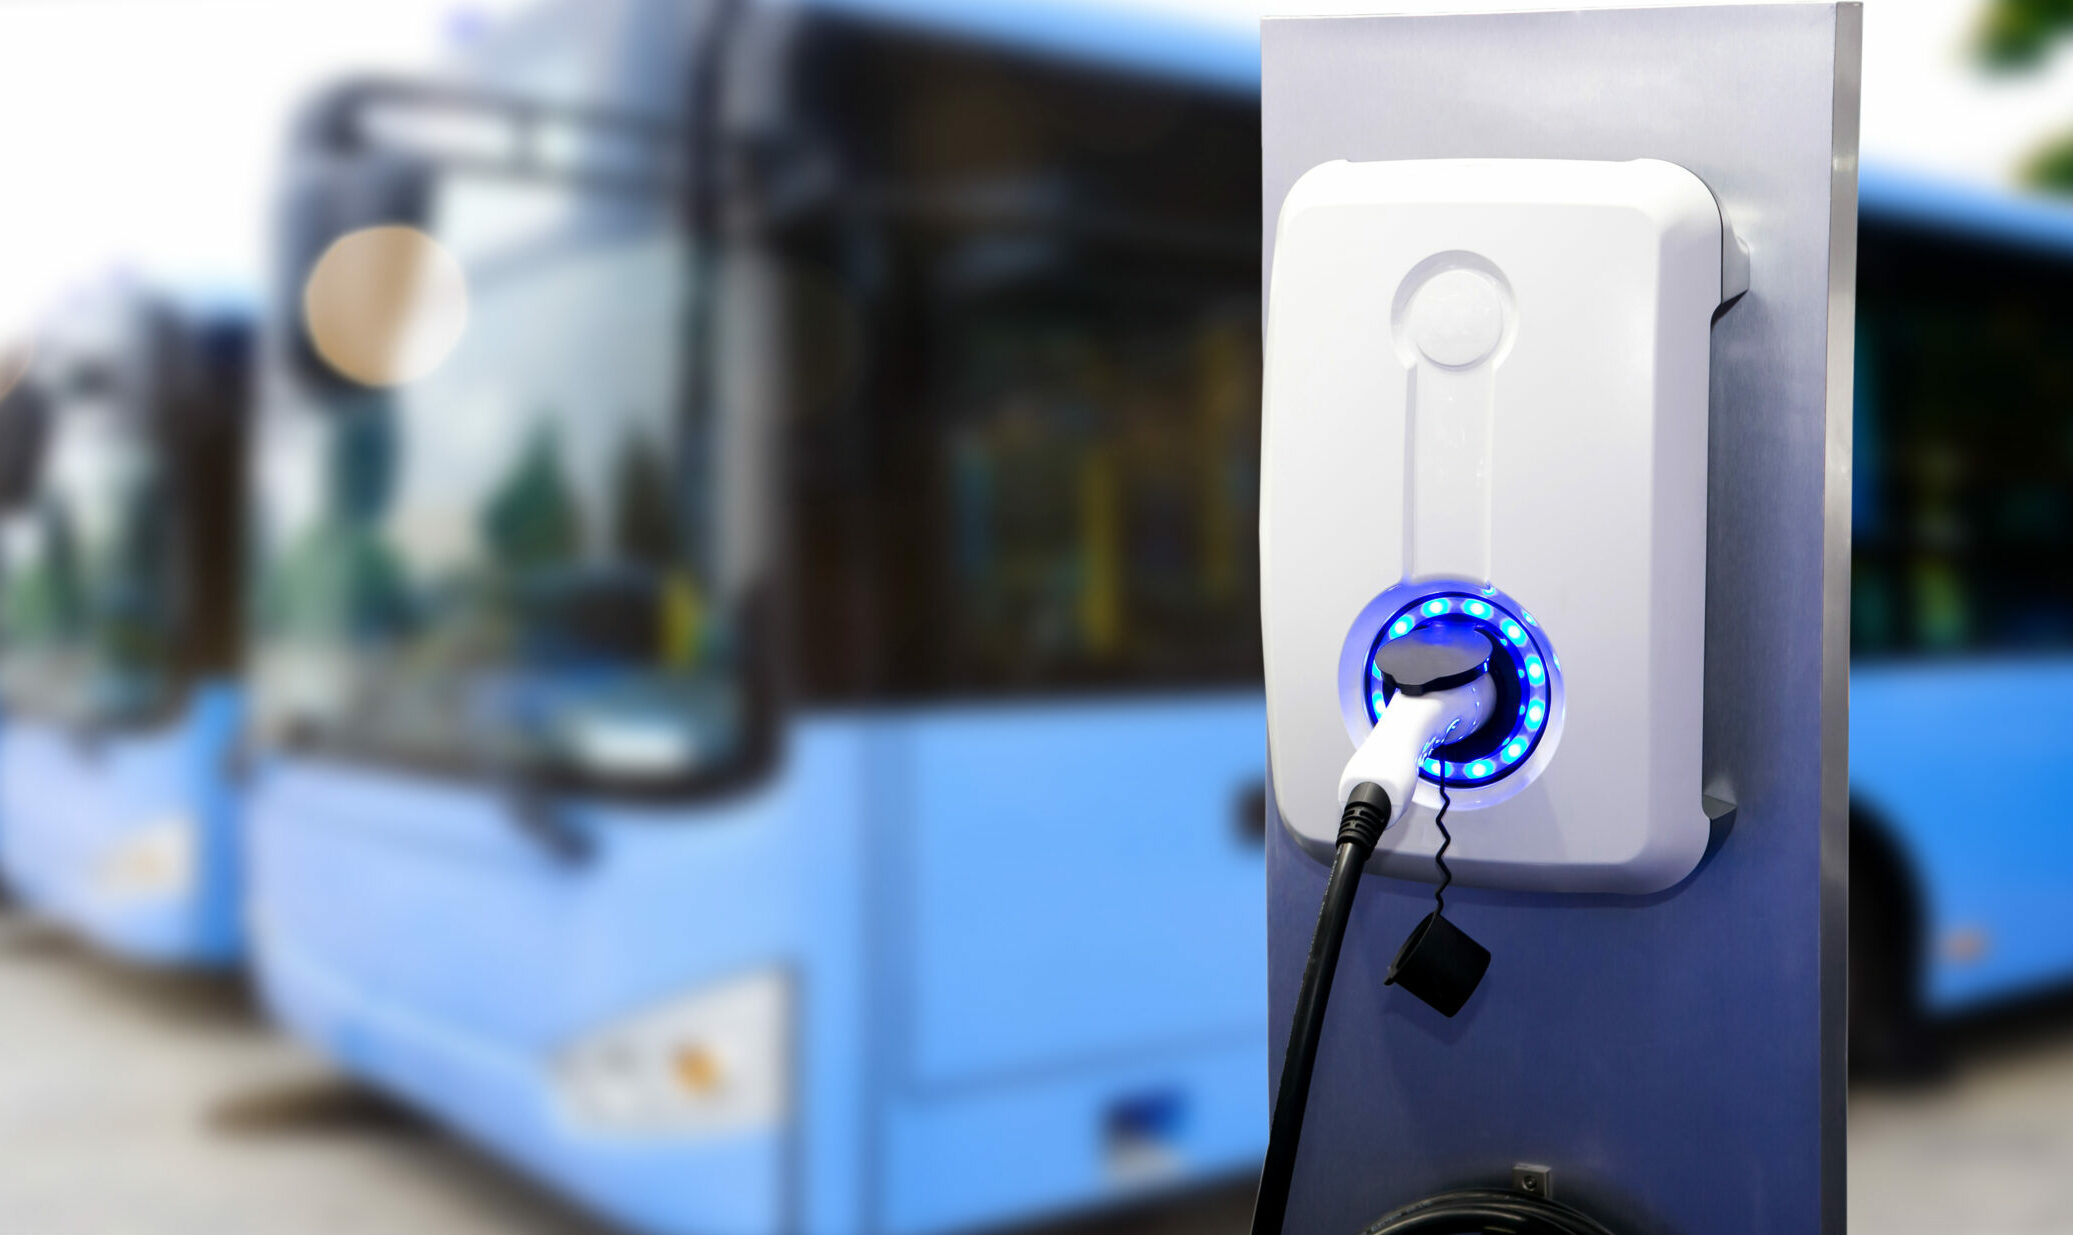 Commercial coaches being charged by charge point